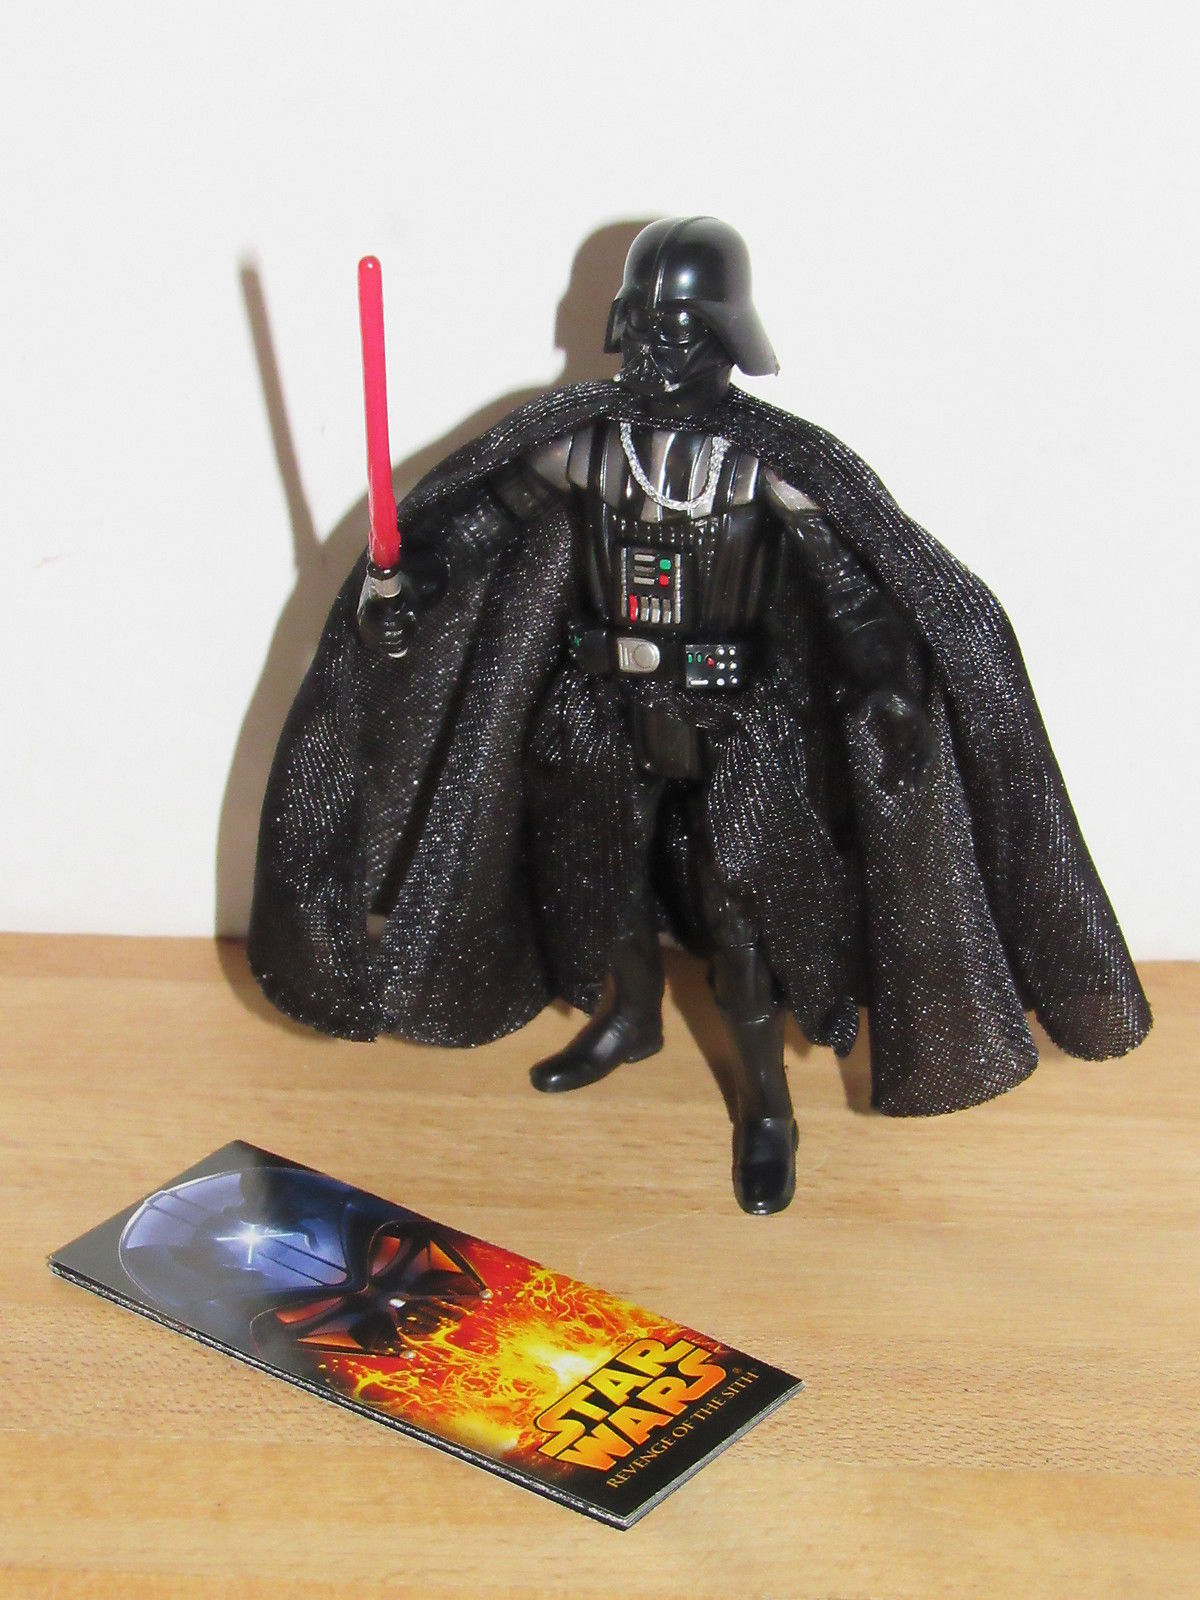 Star Wars Revenge of the Sith #11 Lightsaber Attack Darth Vader